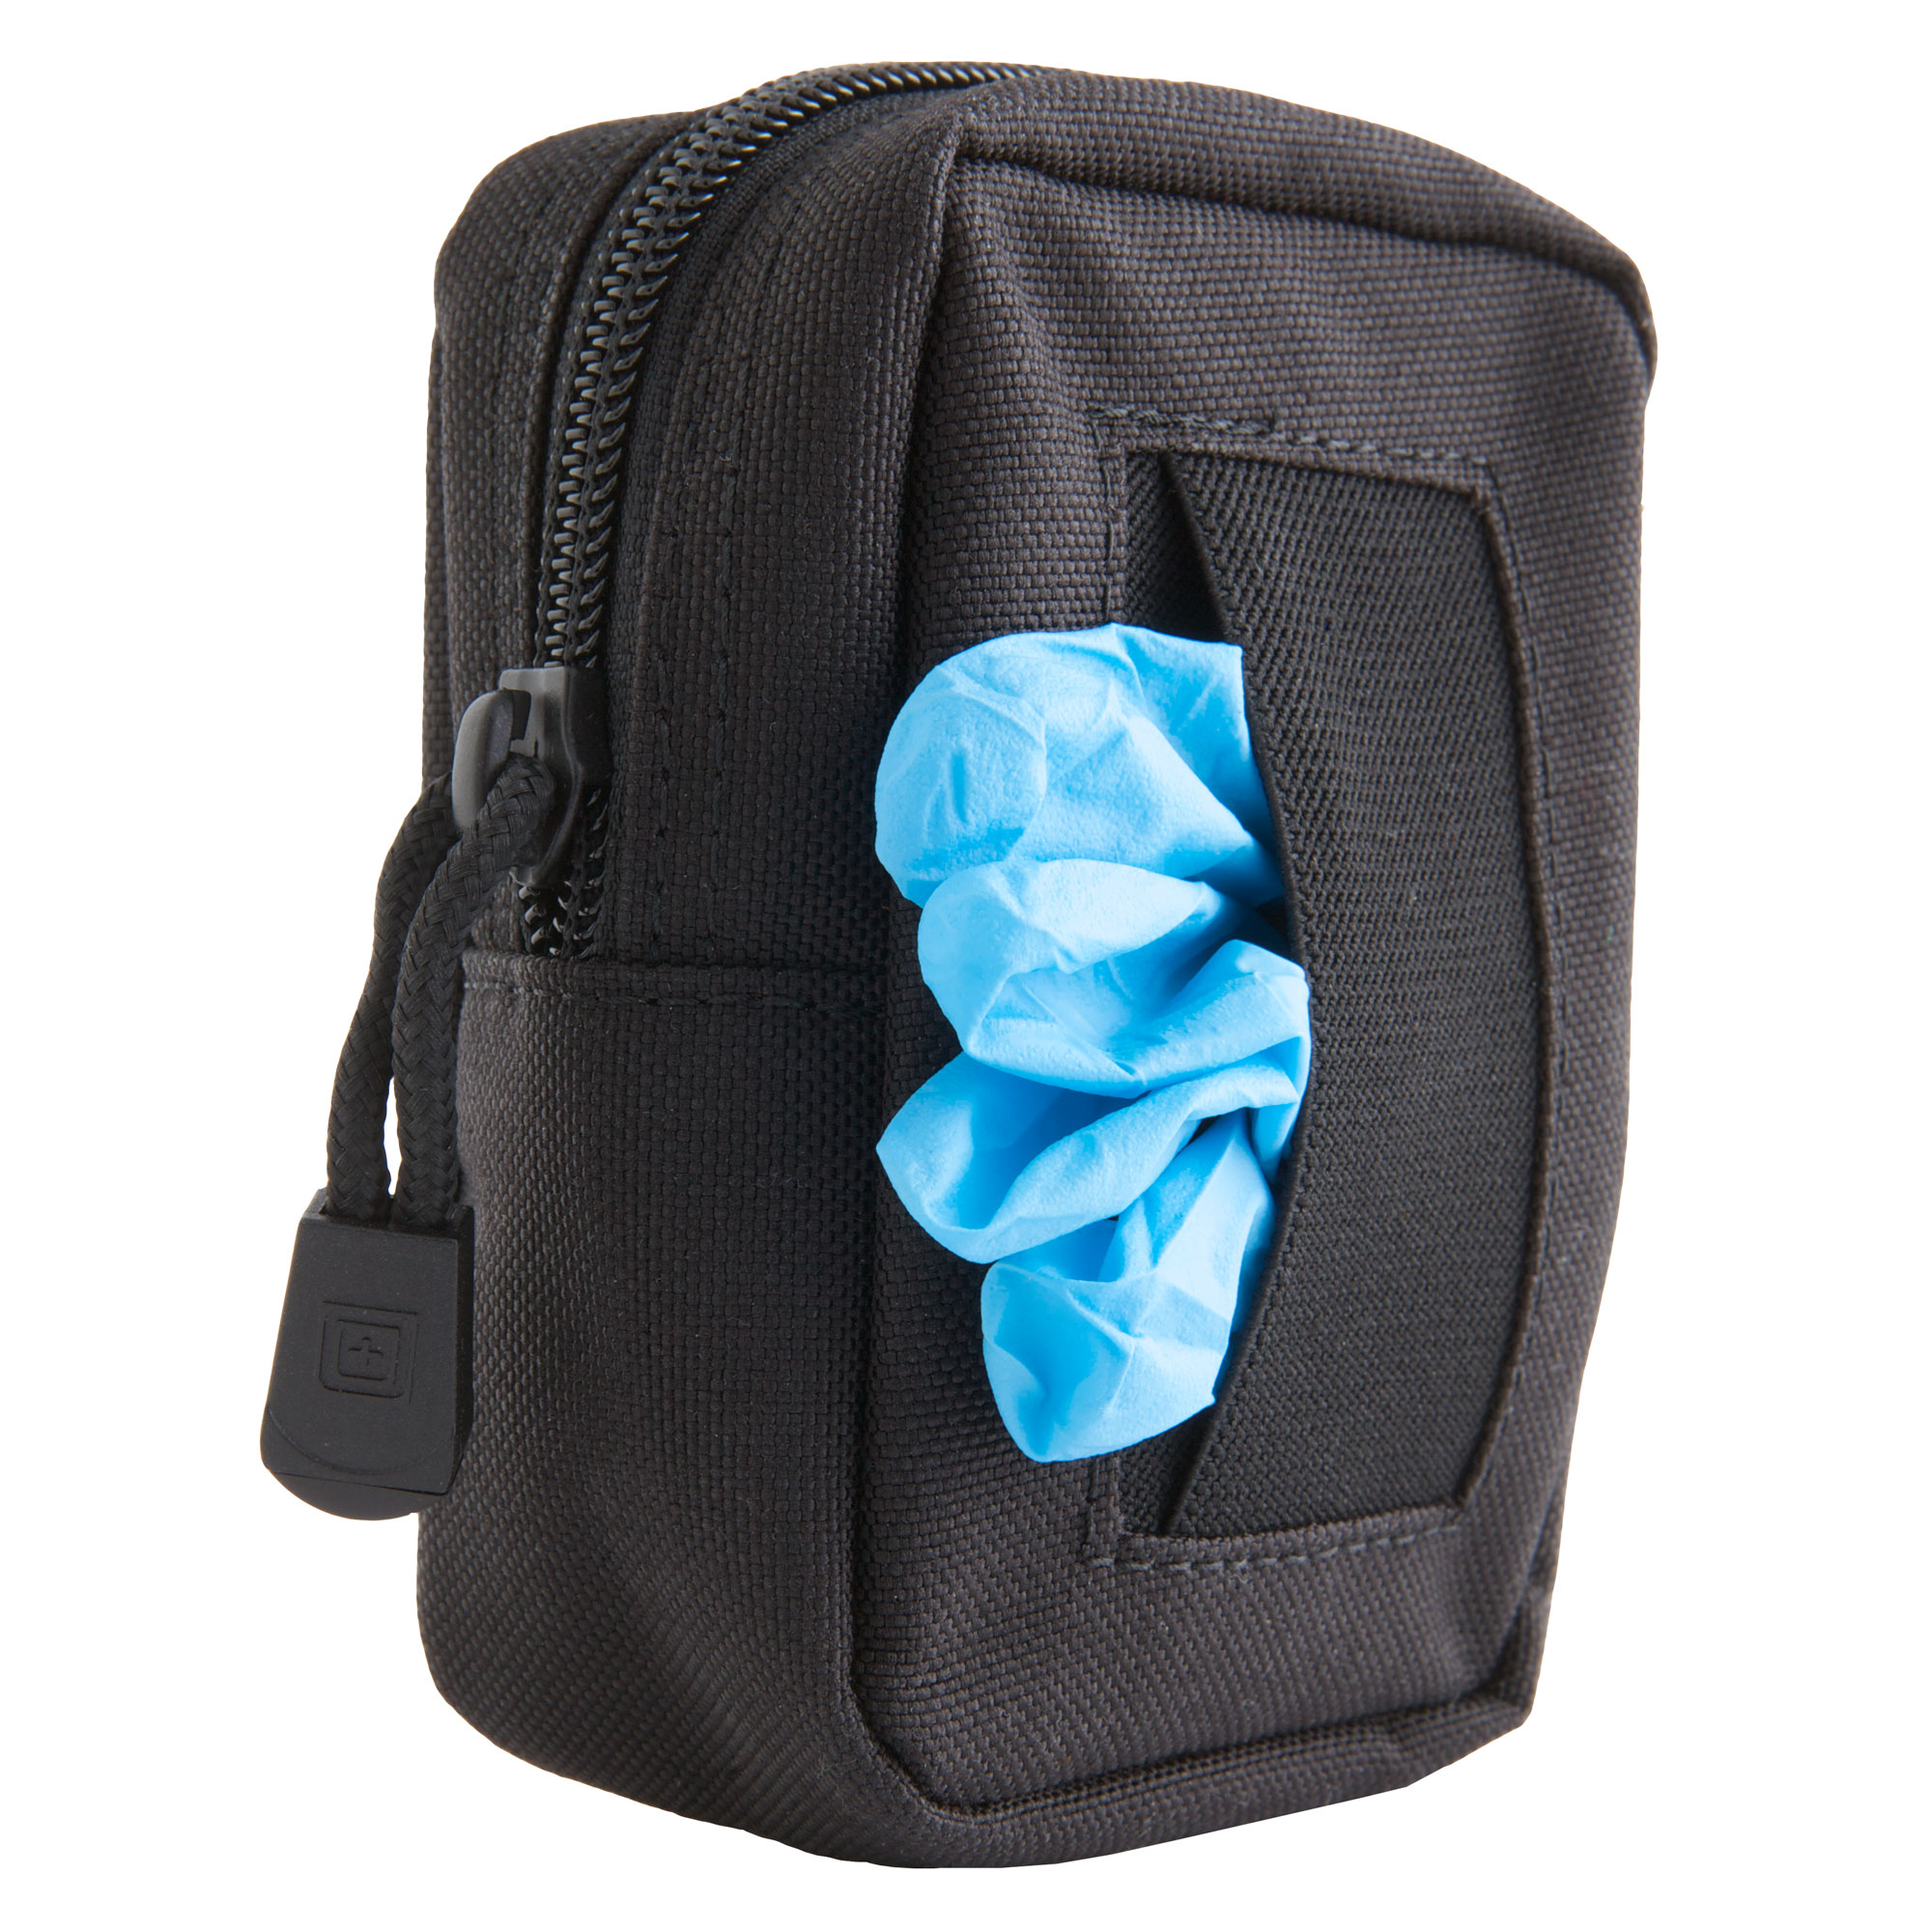 5.11 Disposable Glove Pouch - Black